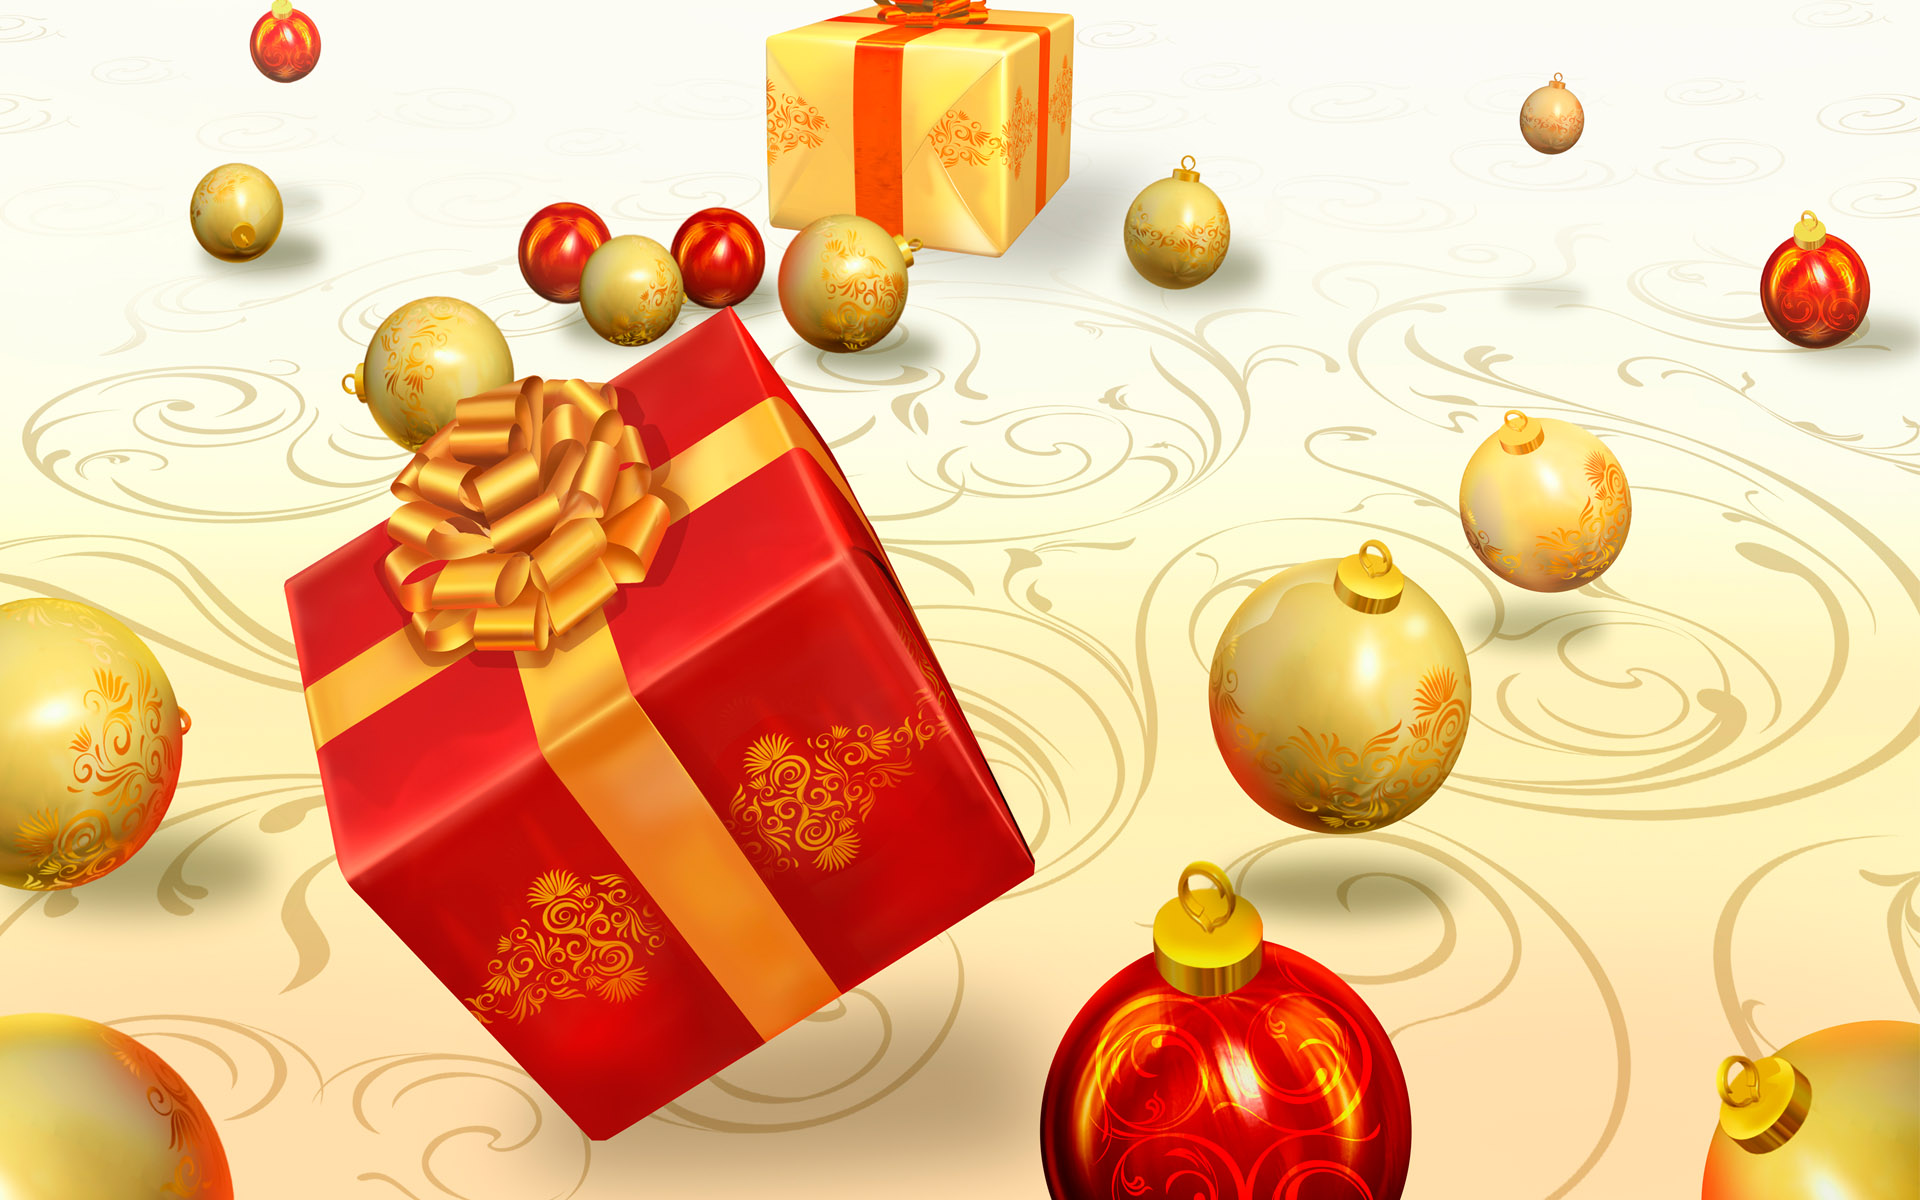 HD Wallpapers Christmas Gifts